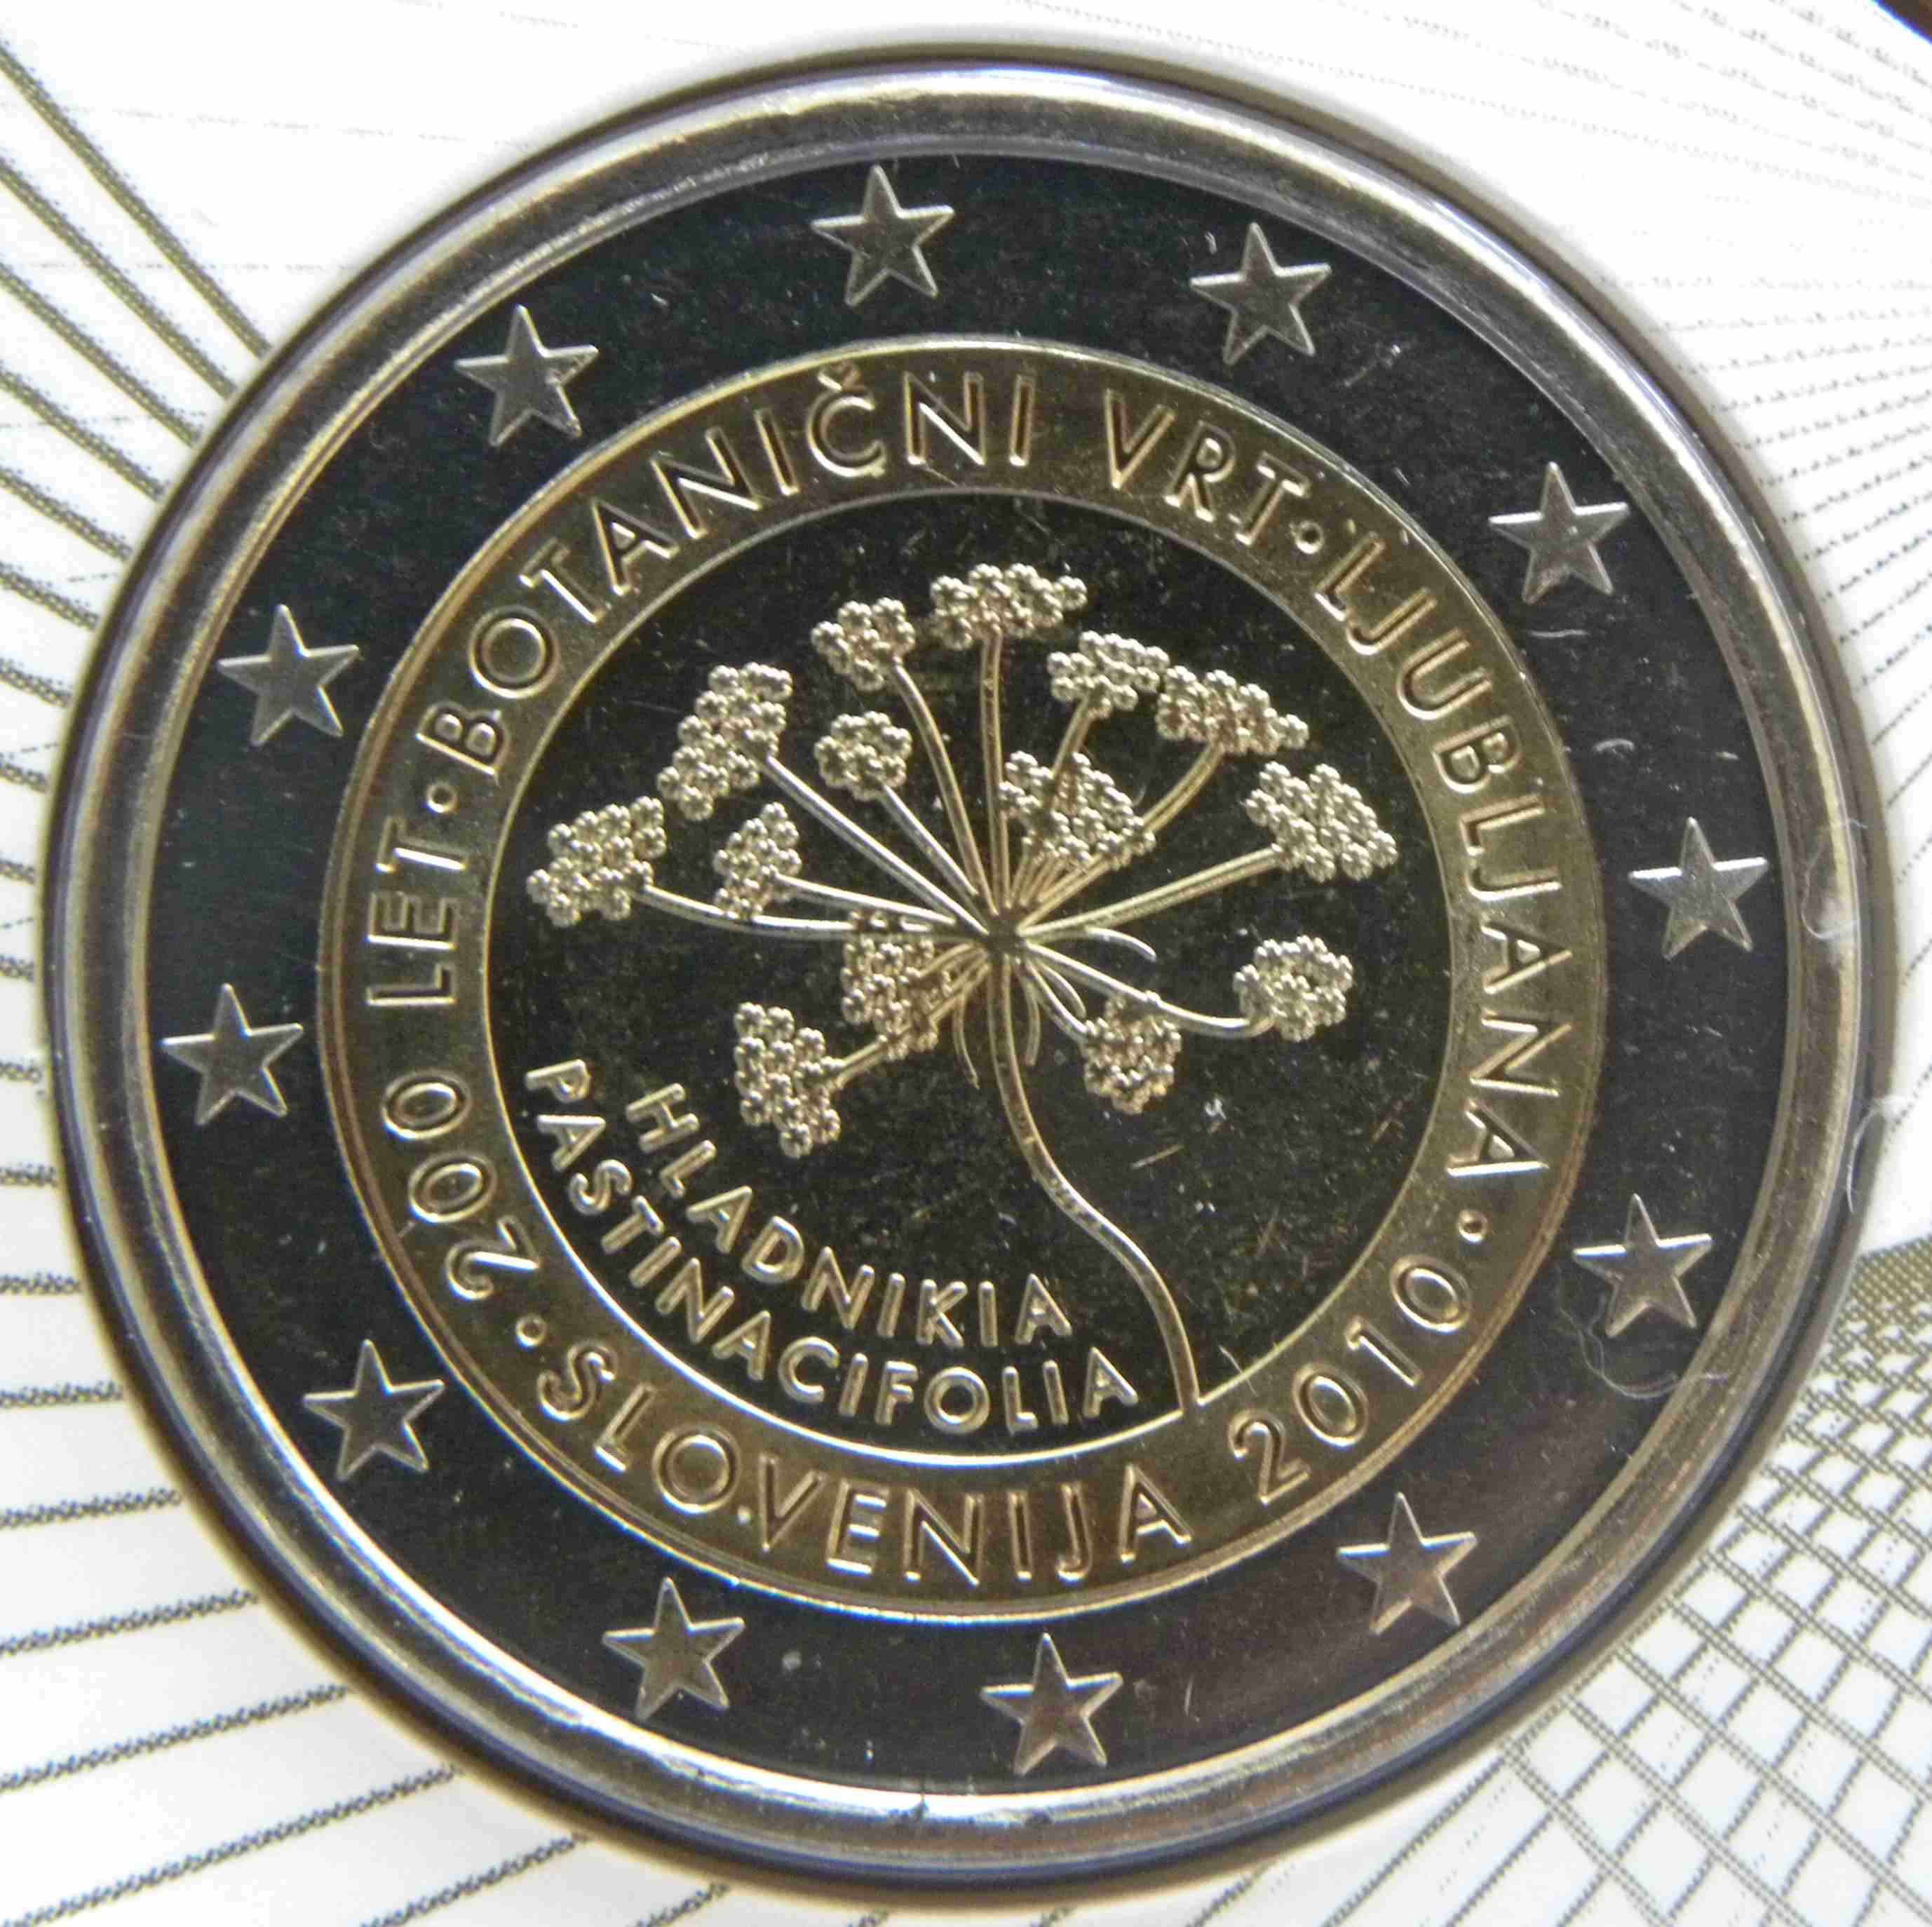 slovenia 2 euro coin 200 years ljubljana botanical gardens 2010 euro the online. Black Bedroom Furniture Sets. Home Design Ideas